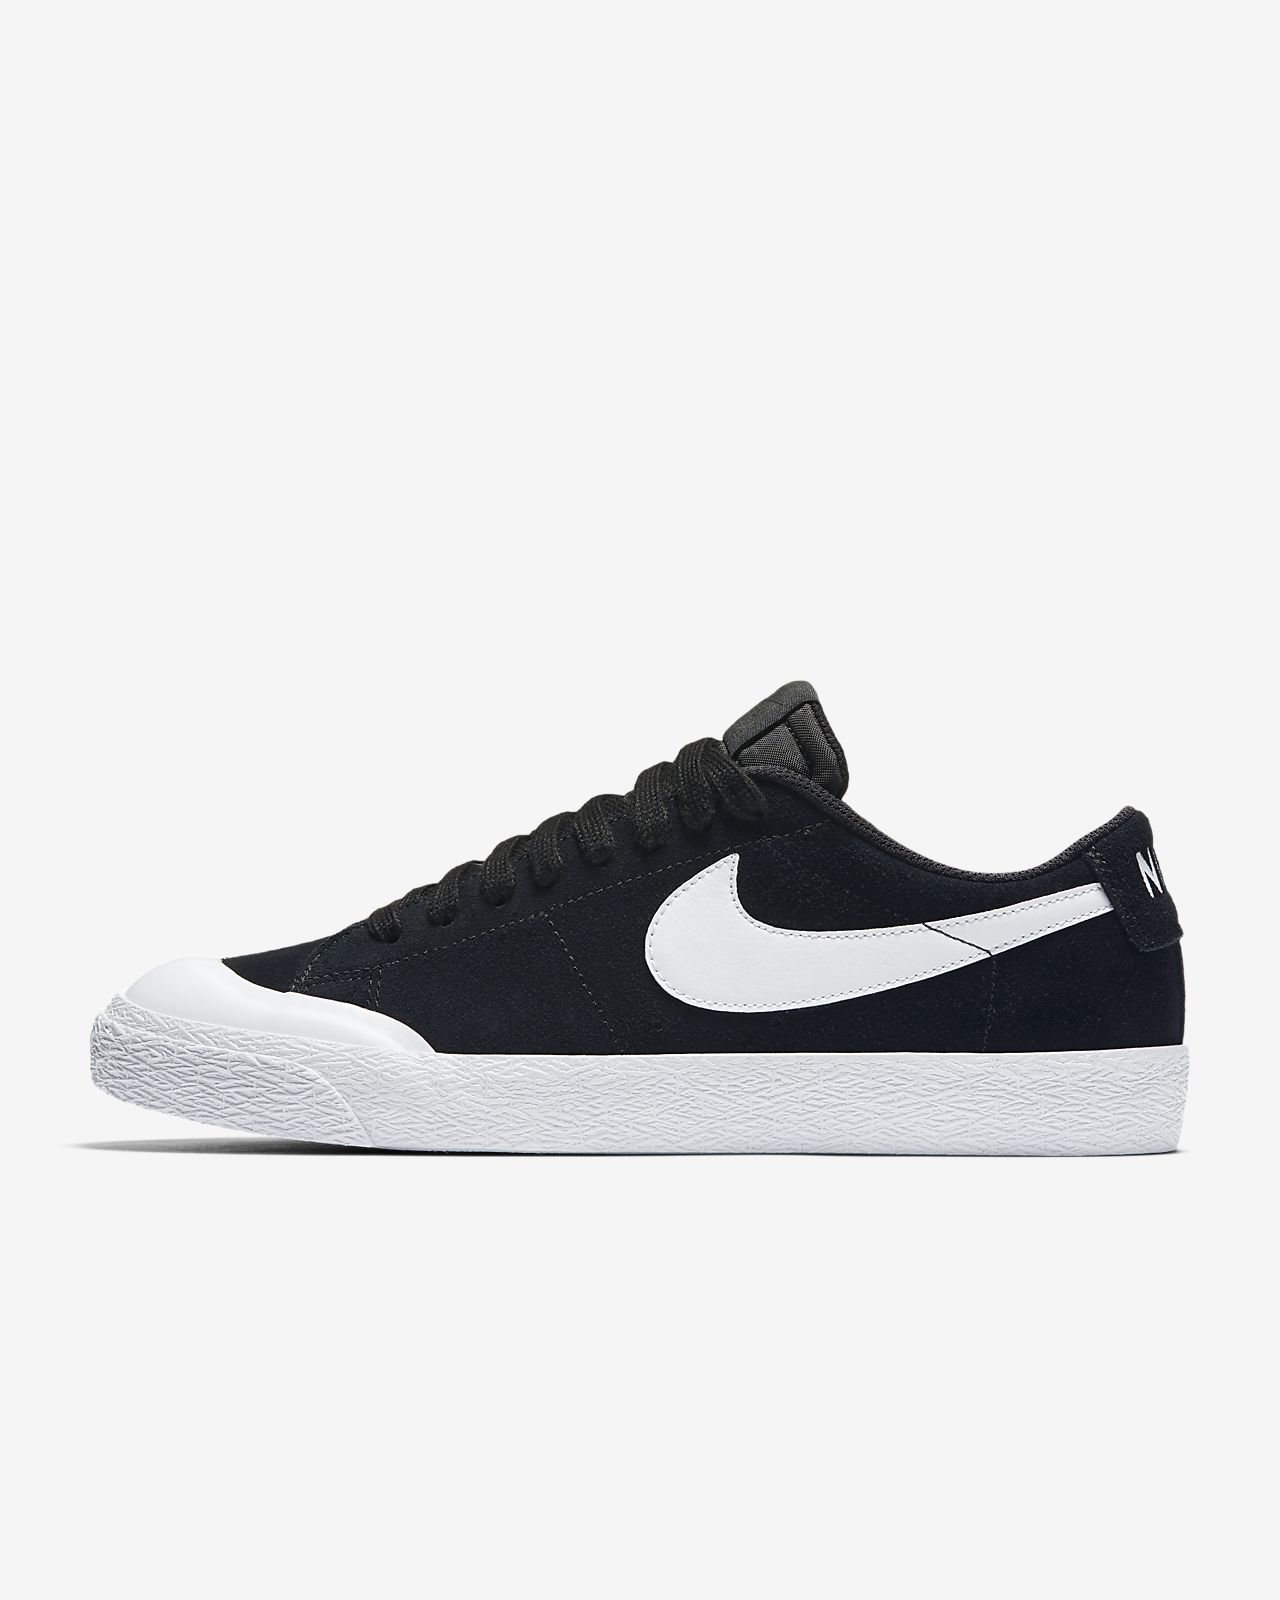 Nike SB Blazer Low XT Men's Skateboarding Shoe